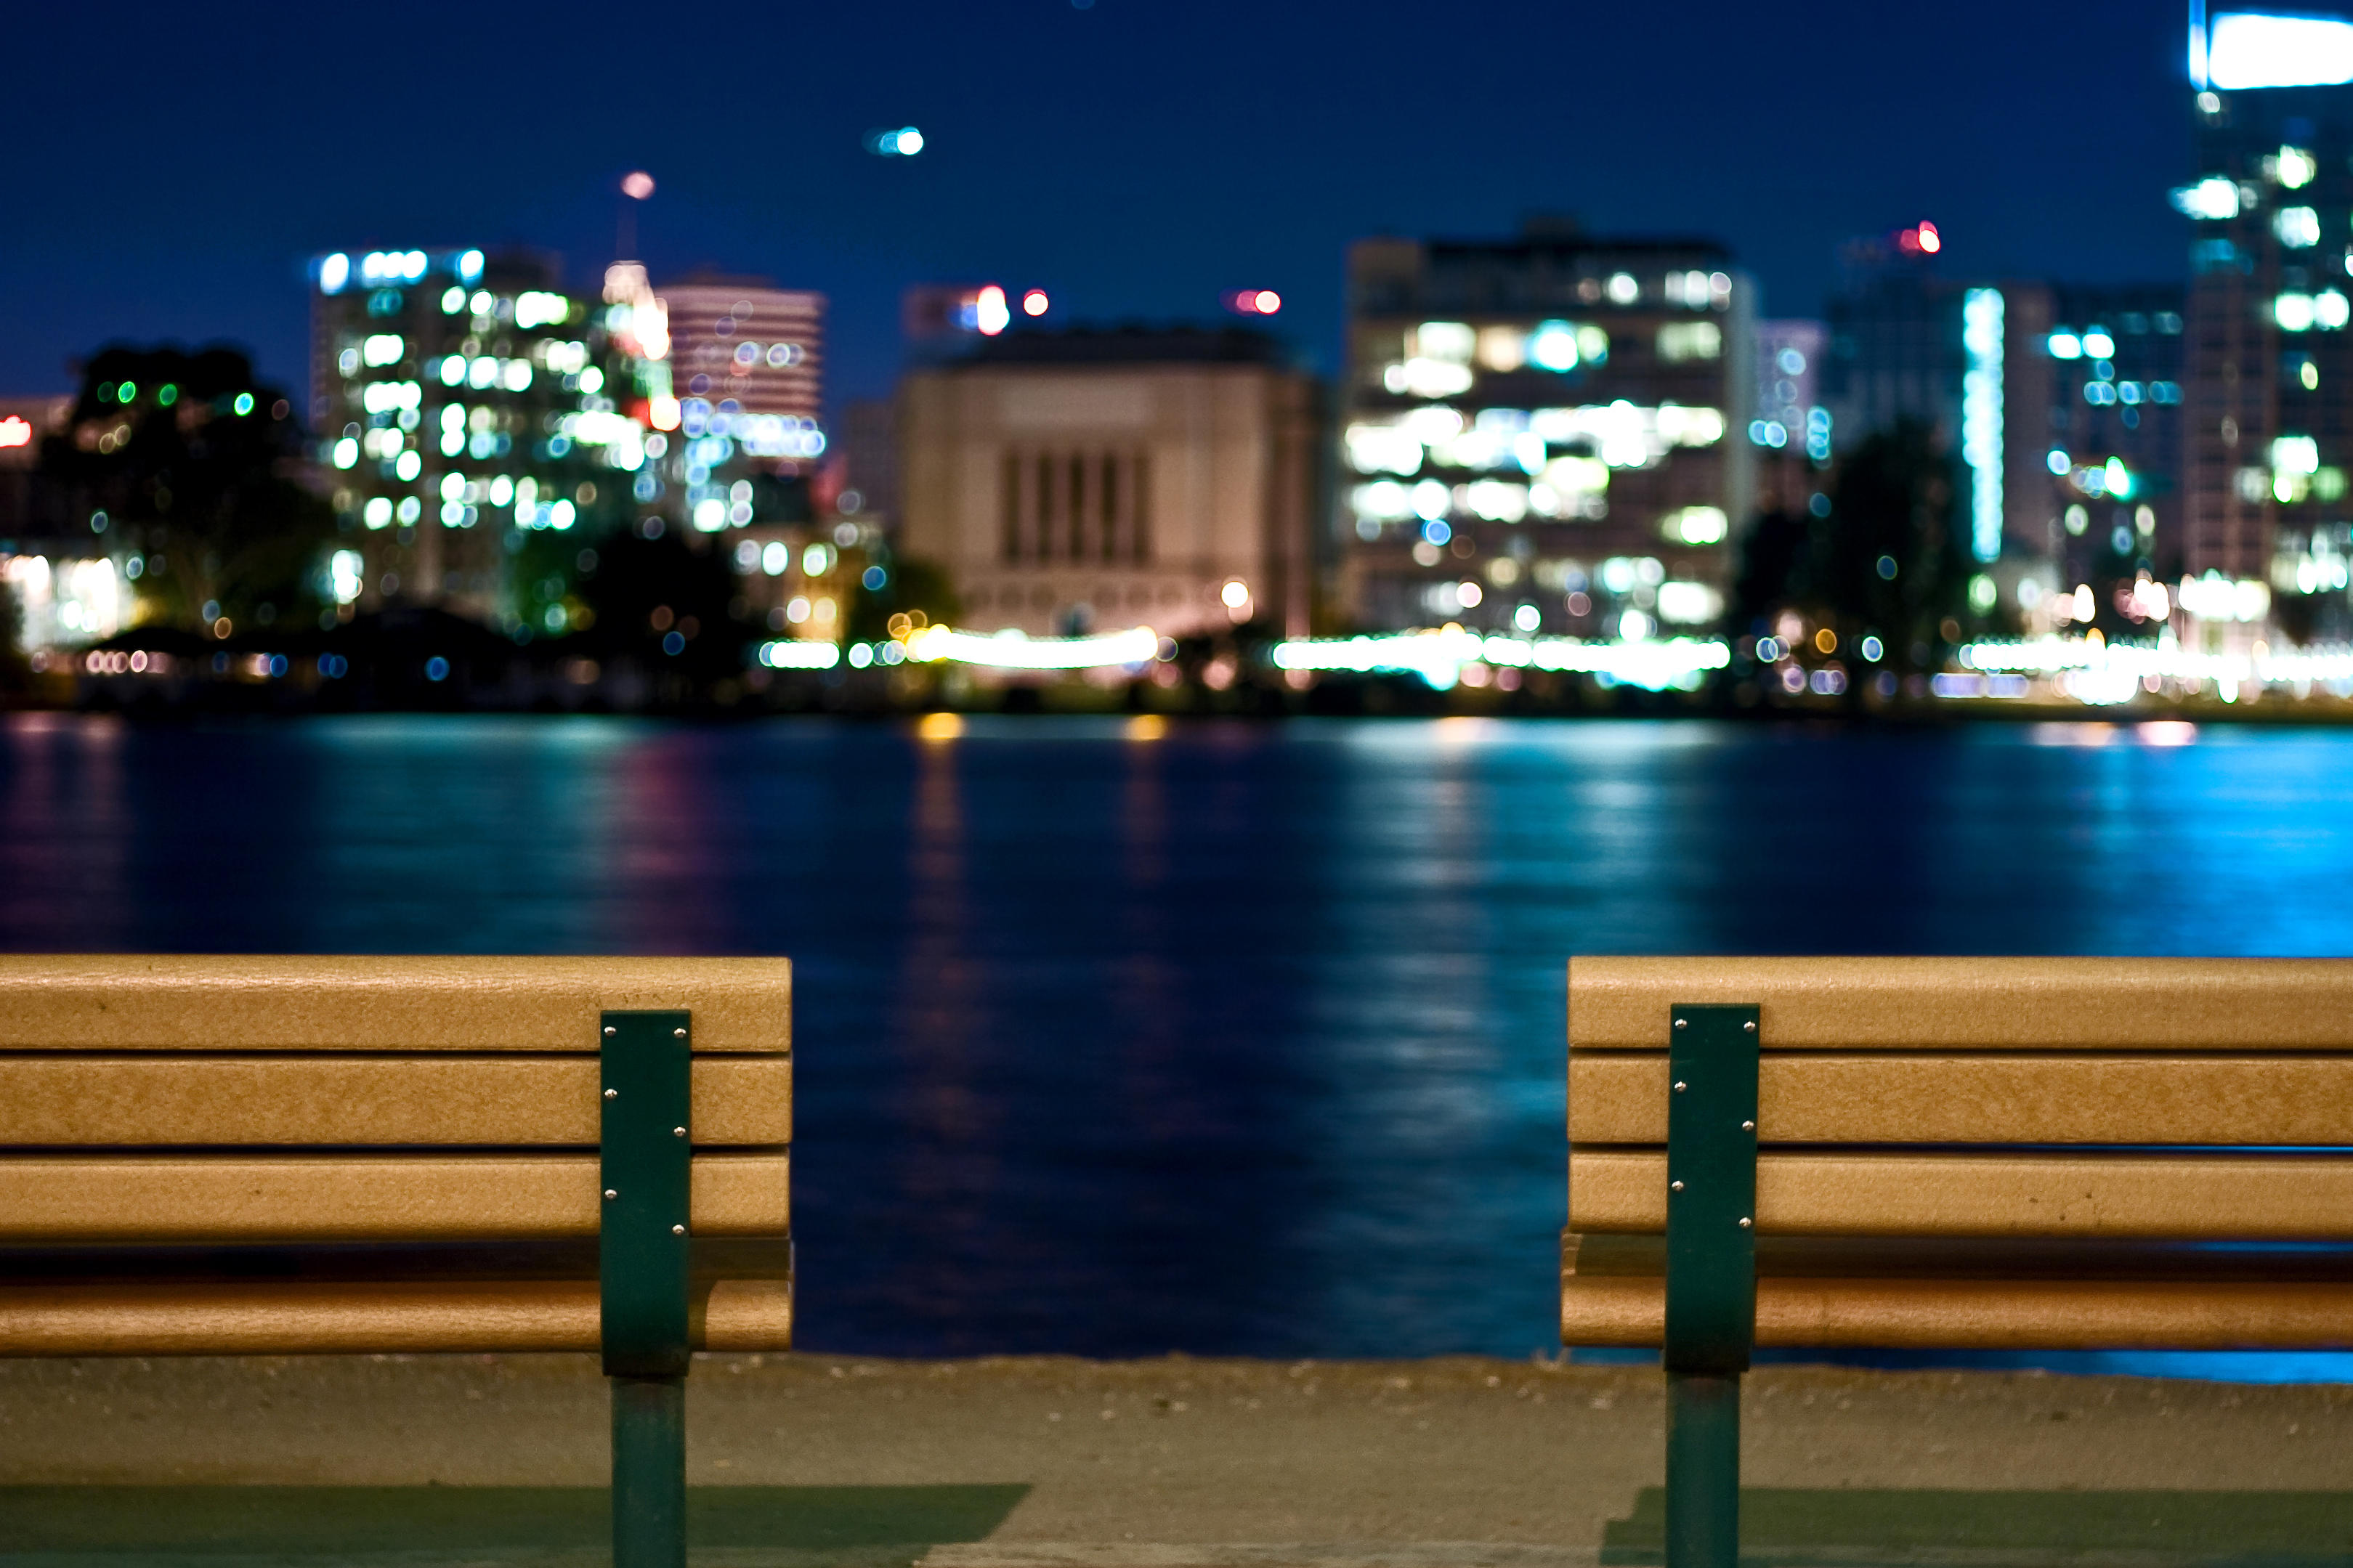 Lake Merritt_Bench_Photo by Natausha Greenblott